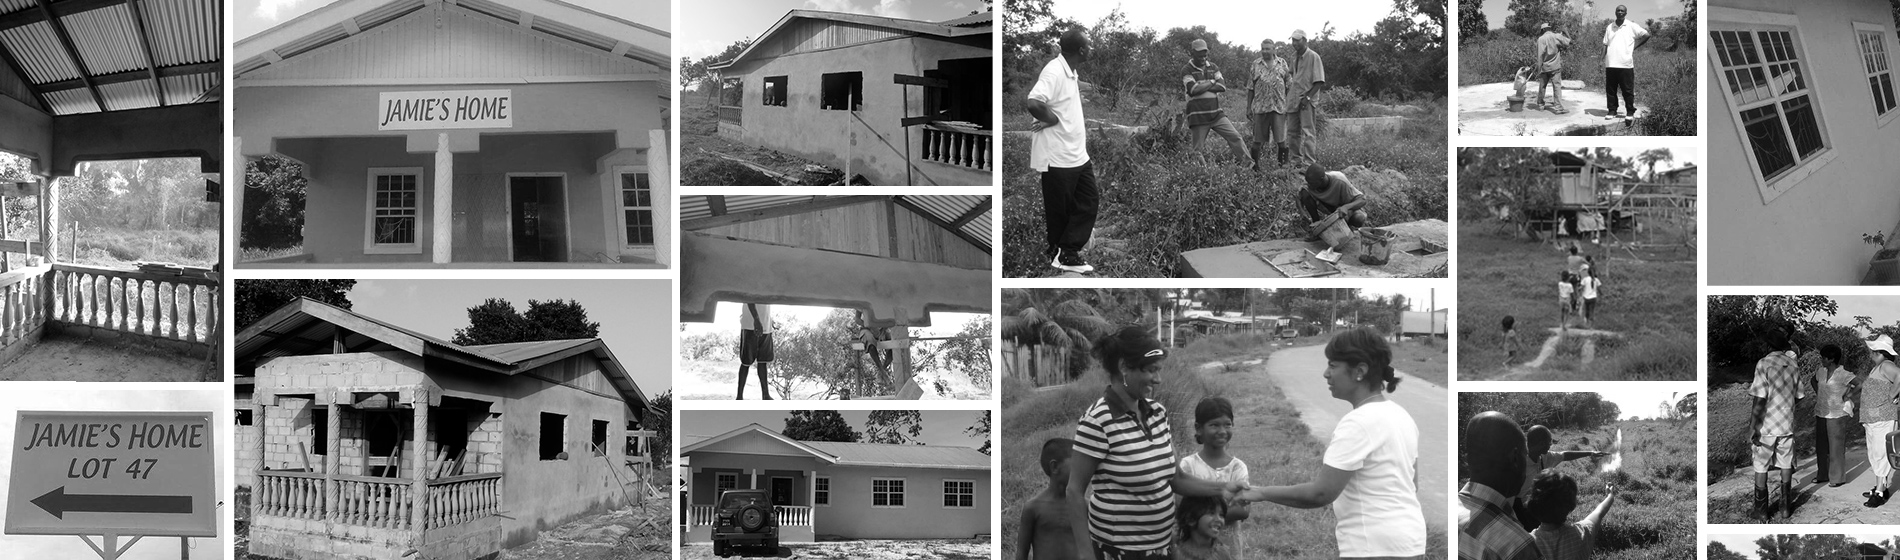 The evolution of Jamie's Home, Jesus in Action's first house in the orphanage